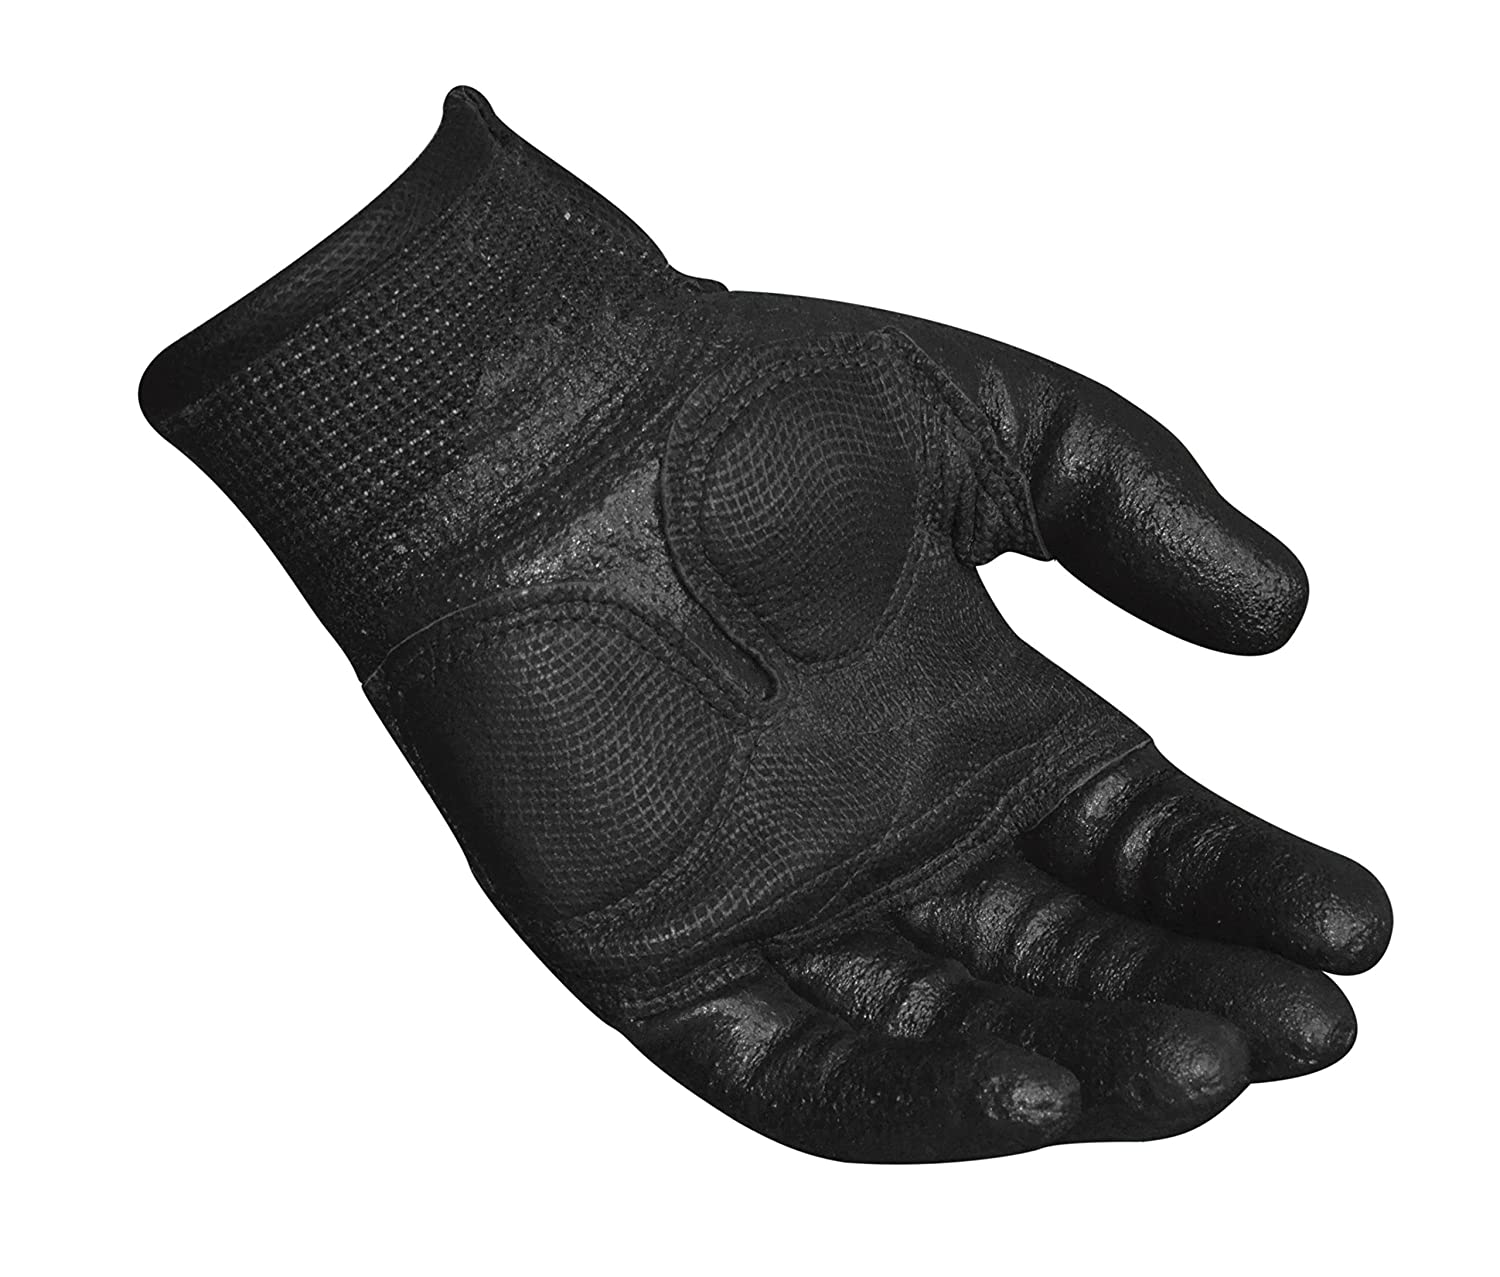 Black leather work gloves nsn - Ansell Activarmr 46 111 Flame Resistant Utility Glove Small 1 Pair Work Gloves Amazon Com Industrial Scientific